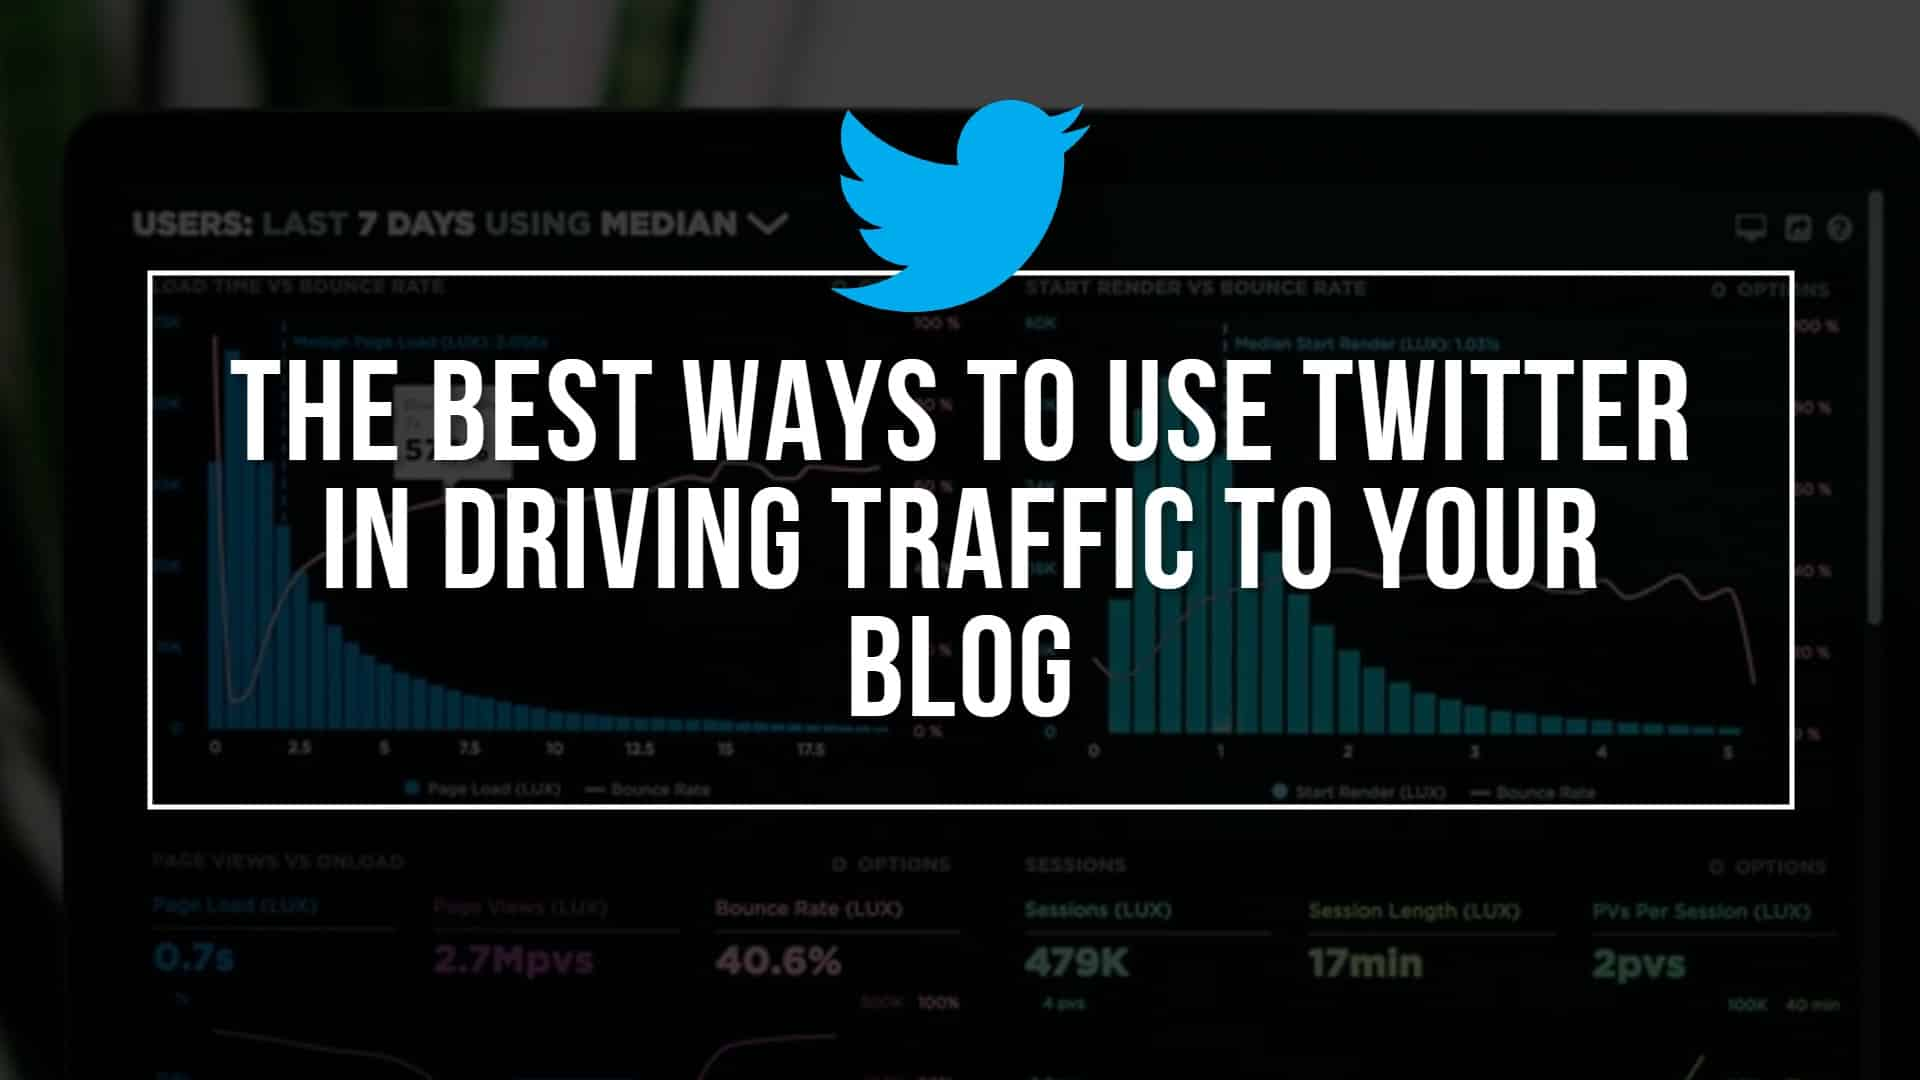 The Best Ways to Use Twitter in Driving Traffic to Your Blog